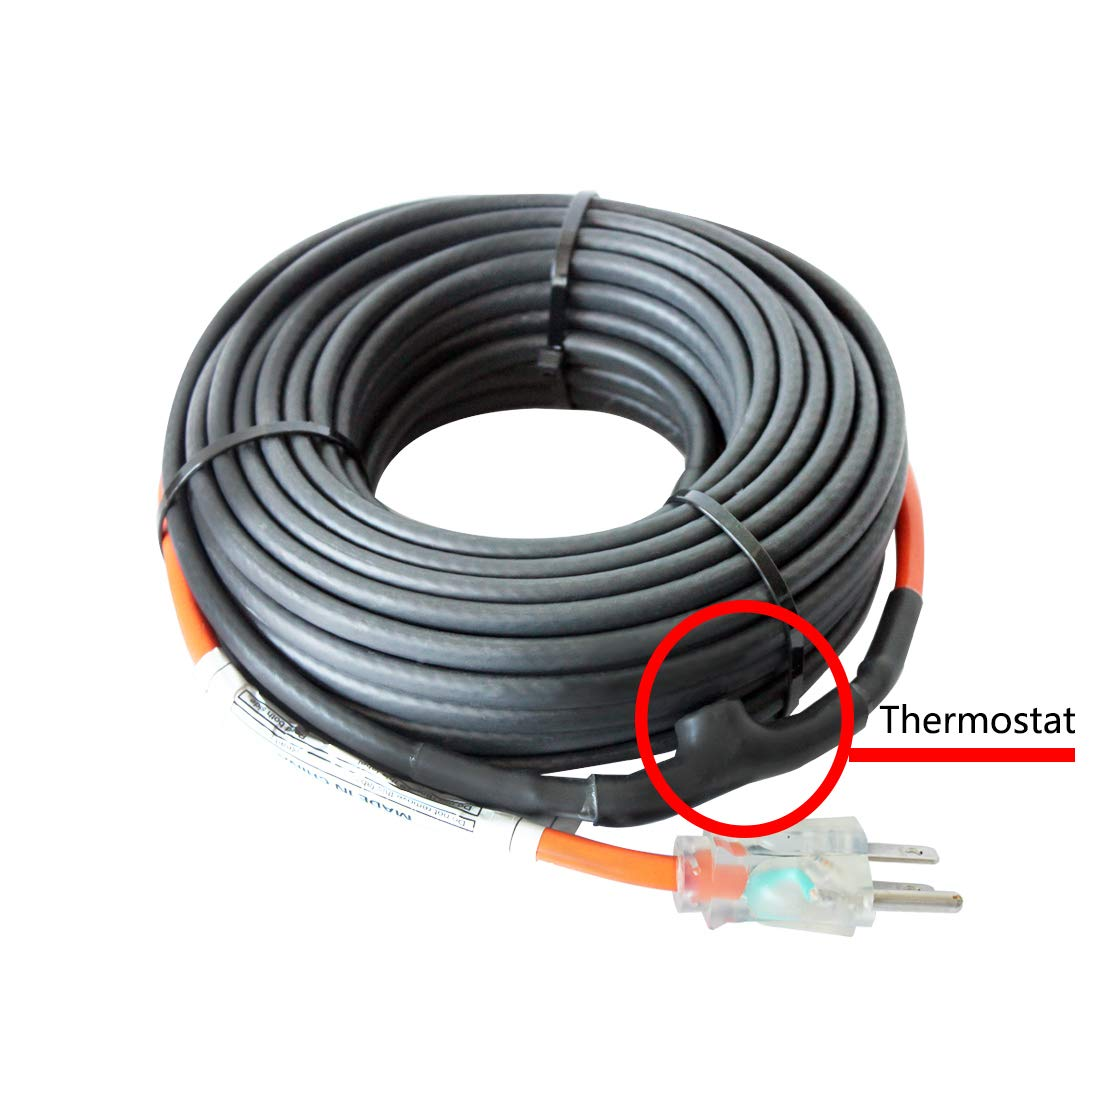 HEATIT JHSF 3-feet 120V Self Regulating Pre-assembled Pipe Heating Cable by HEATIT (Image #7)